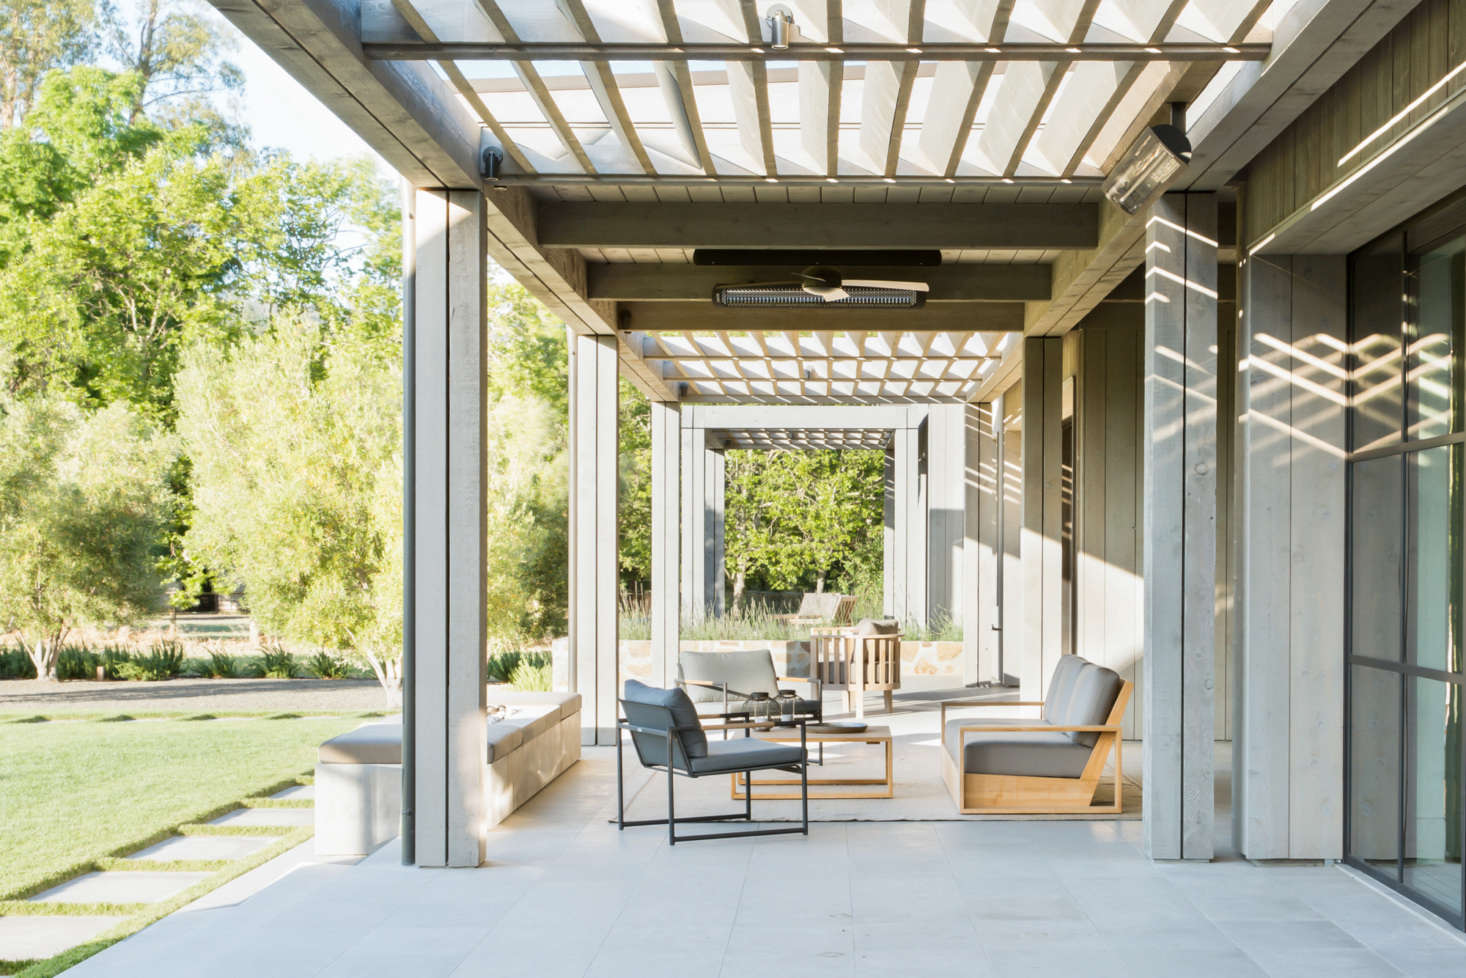 The series of indoor rooms leads directly to outdoor living spaces.